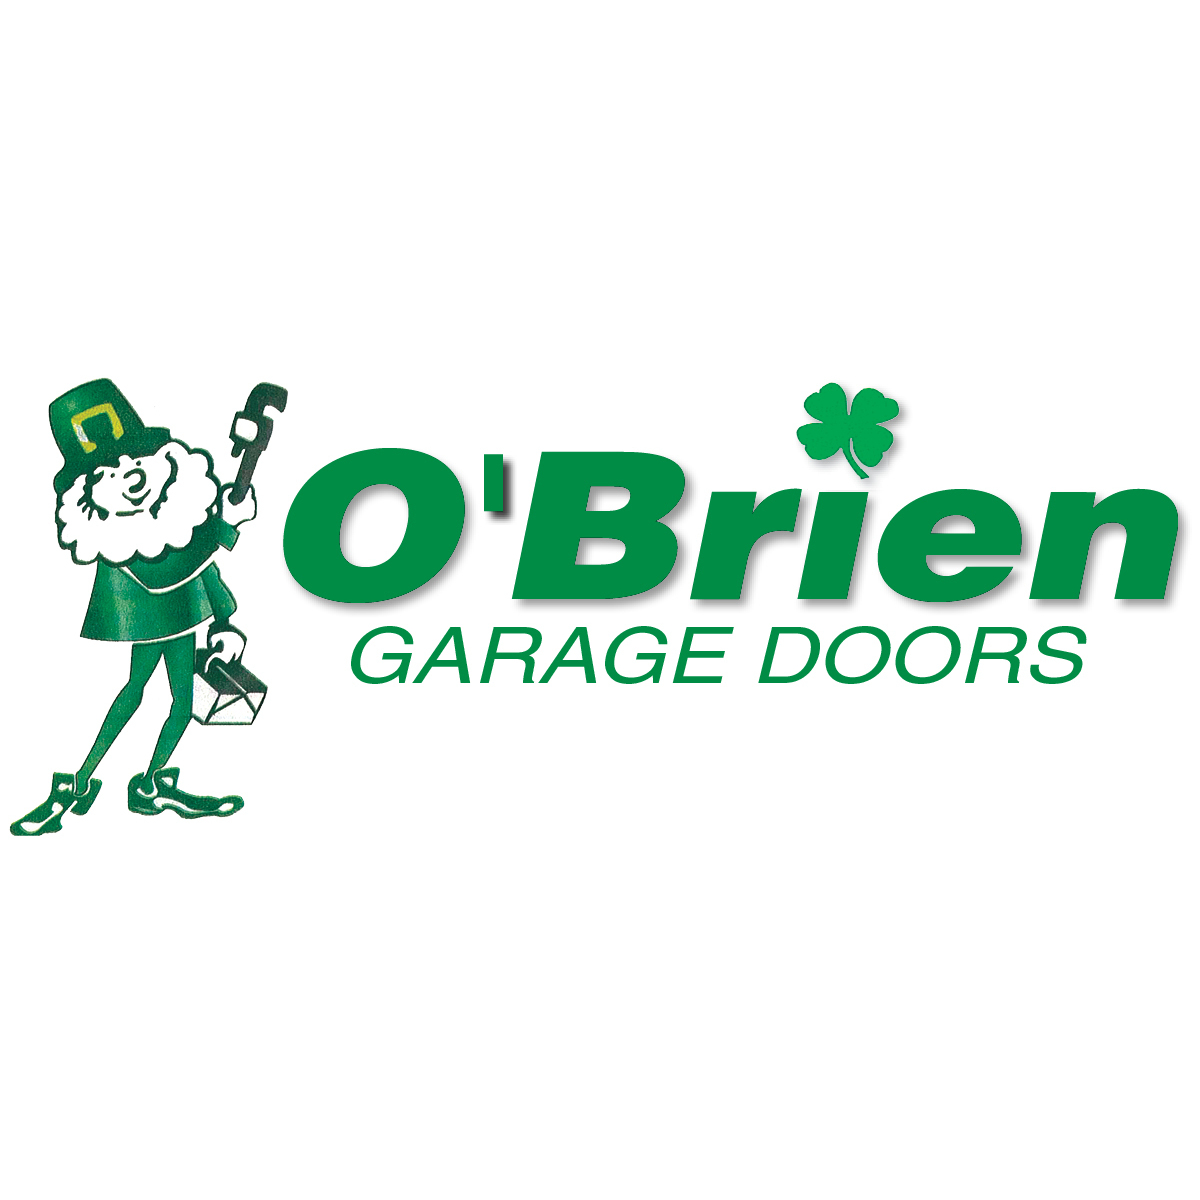 1200 #018543 Brien Garage Doors Coupons Near Me In 8coupons picture/photo Garage Doors Near Me 37391200